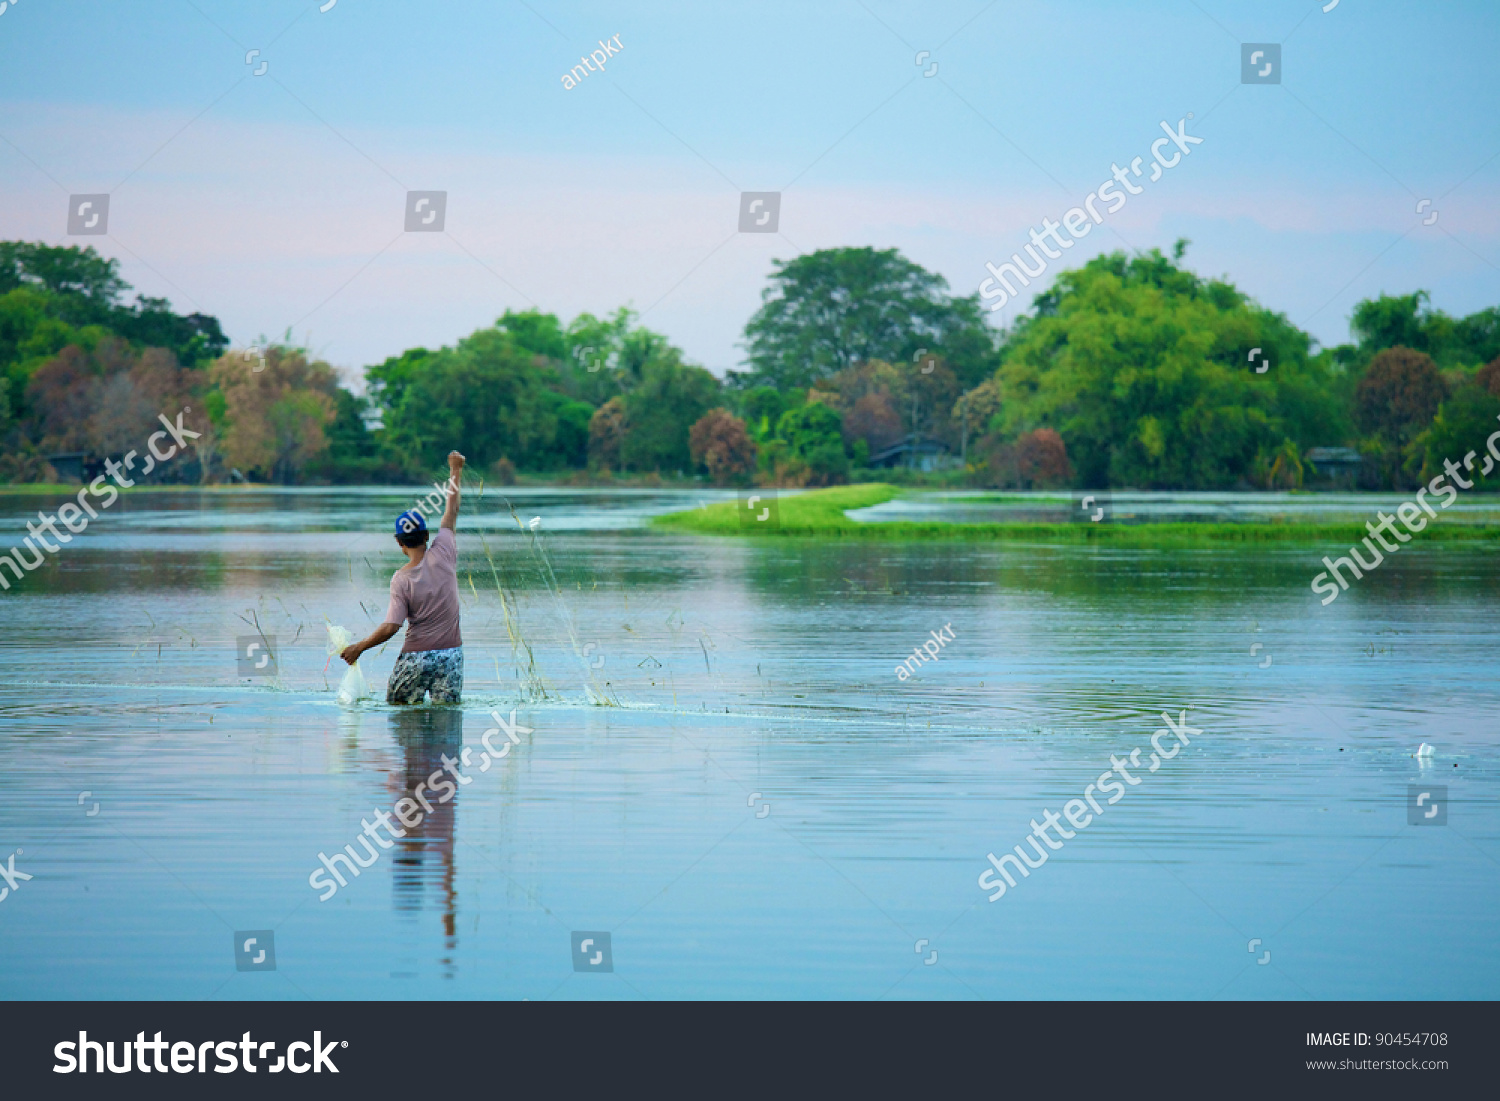 People are catching fish with nets stock photo 90454708 for People catching fish